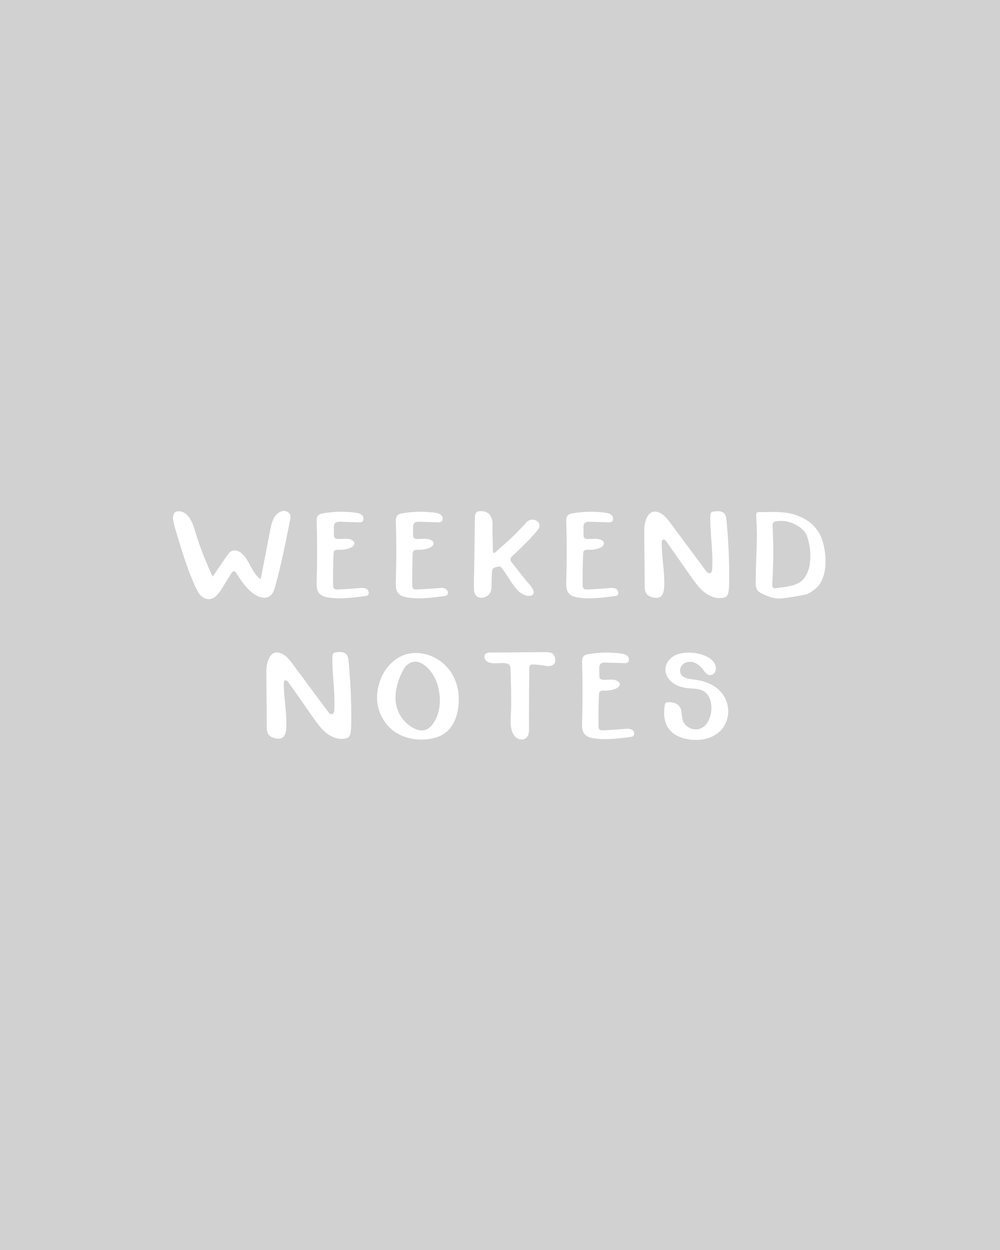 In The Shop: Handmade Fonts   Weekend Notes by Britt Fabello   Sea of Atlas